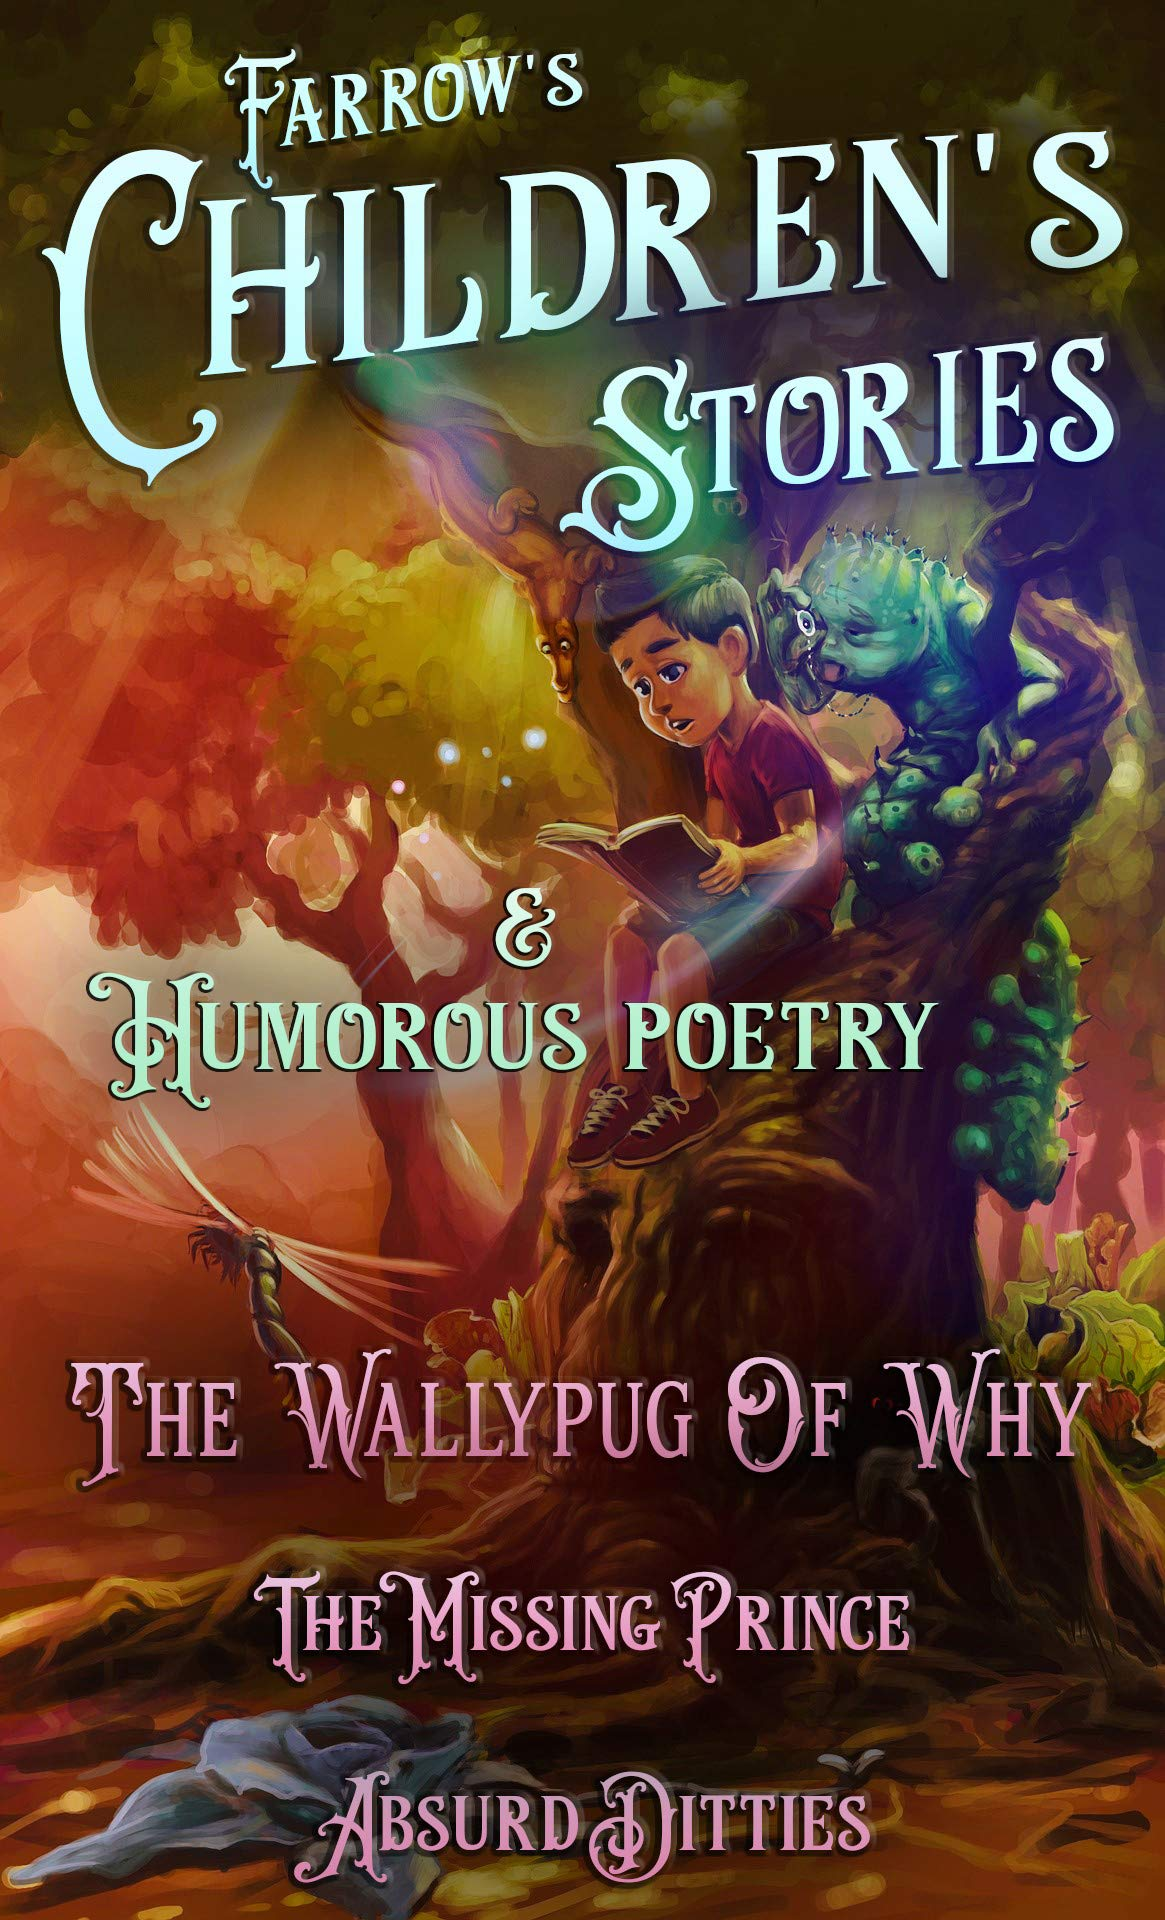 Farrow's Children's stories & Humorous poetry: The Wallypug Of Why, The Missing Prince, Absurd Ditties